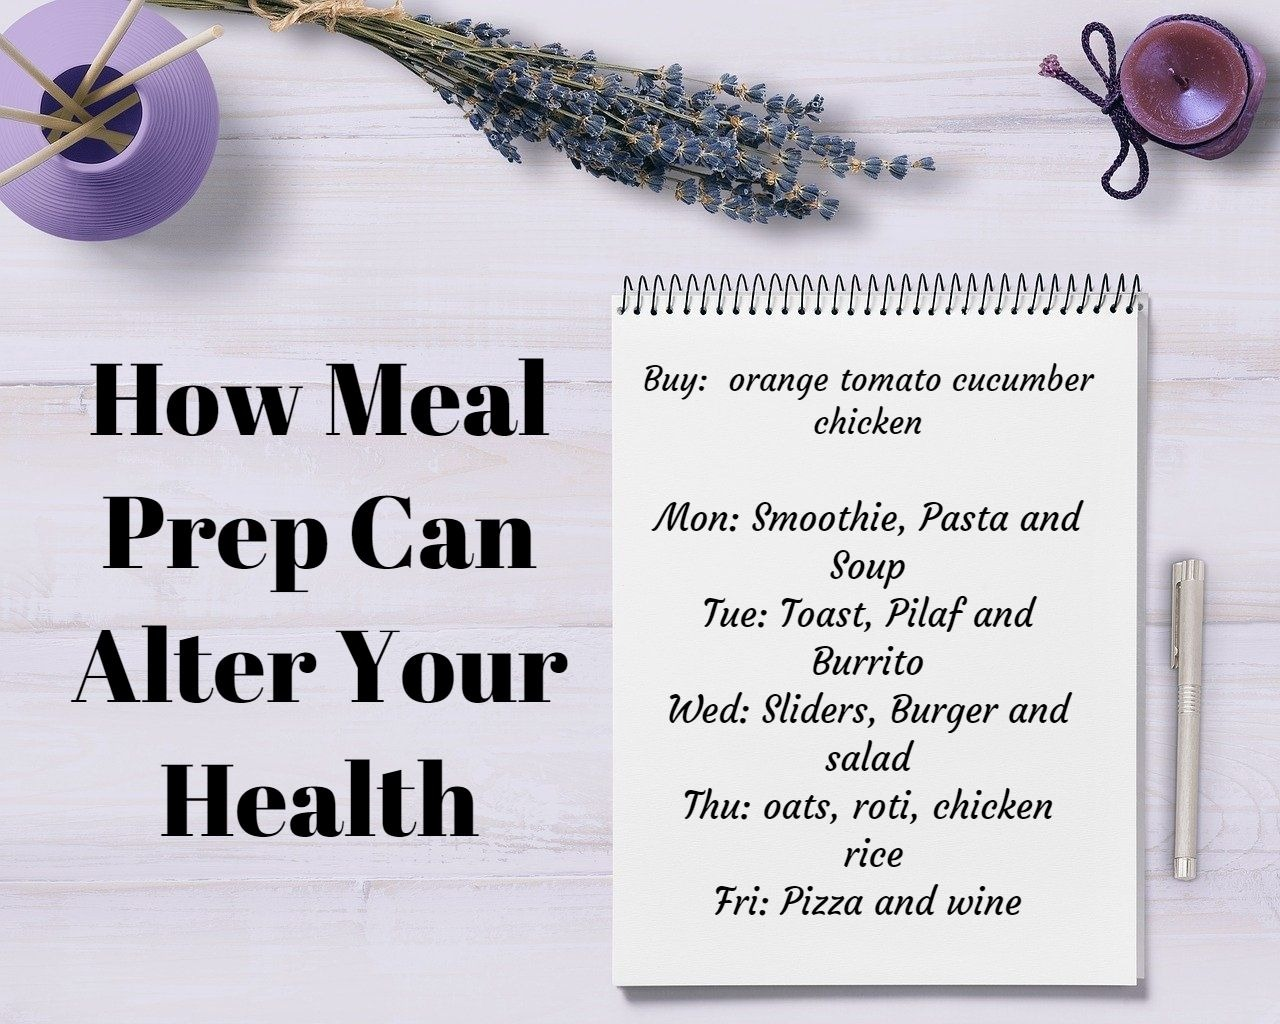 How meal Prep can alter your health